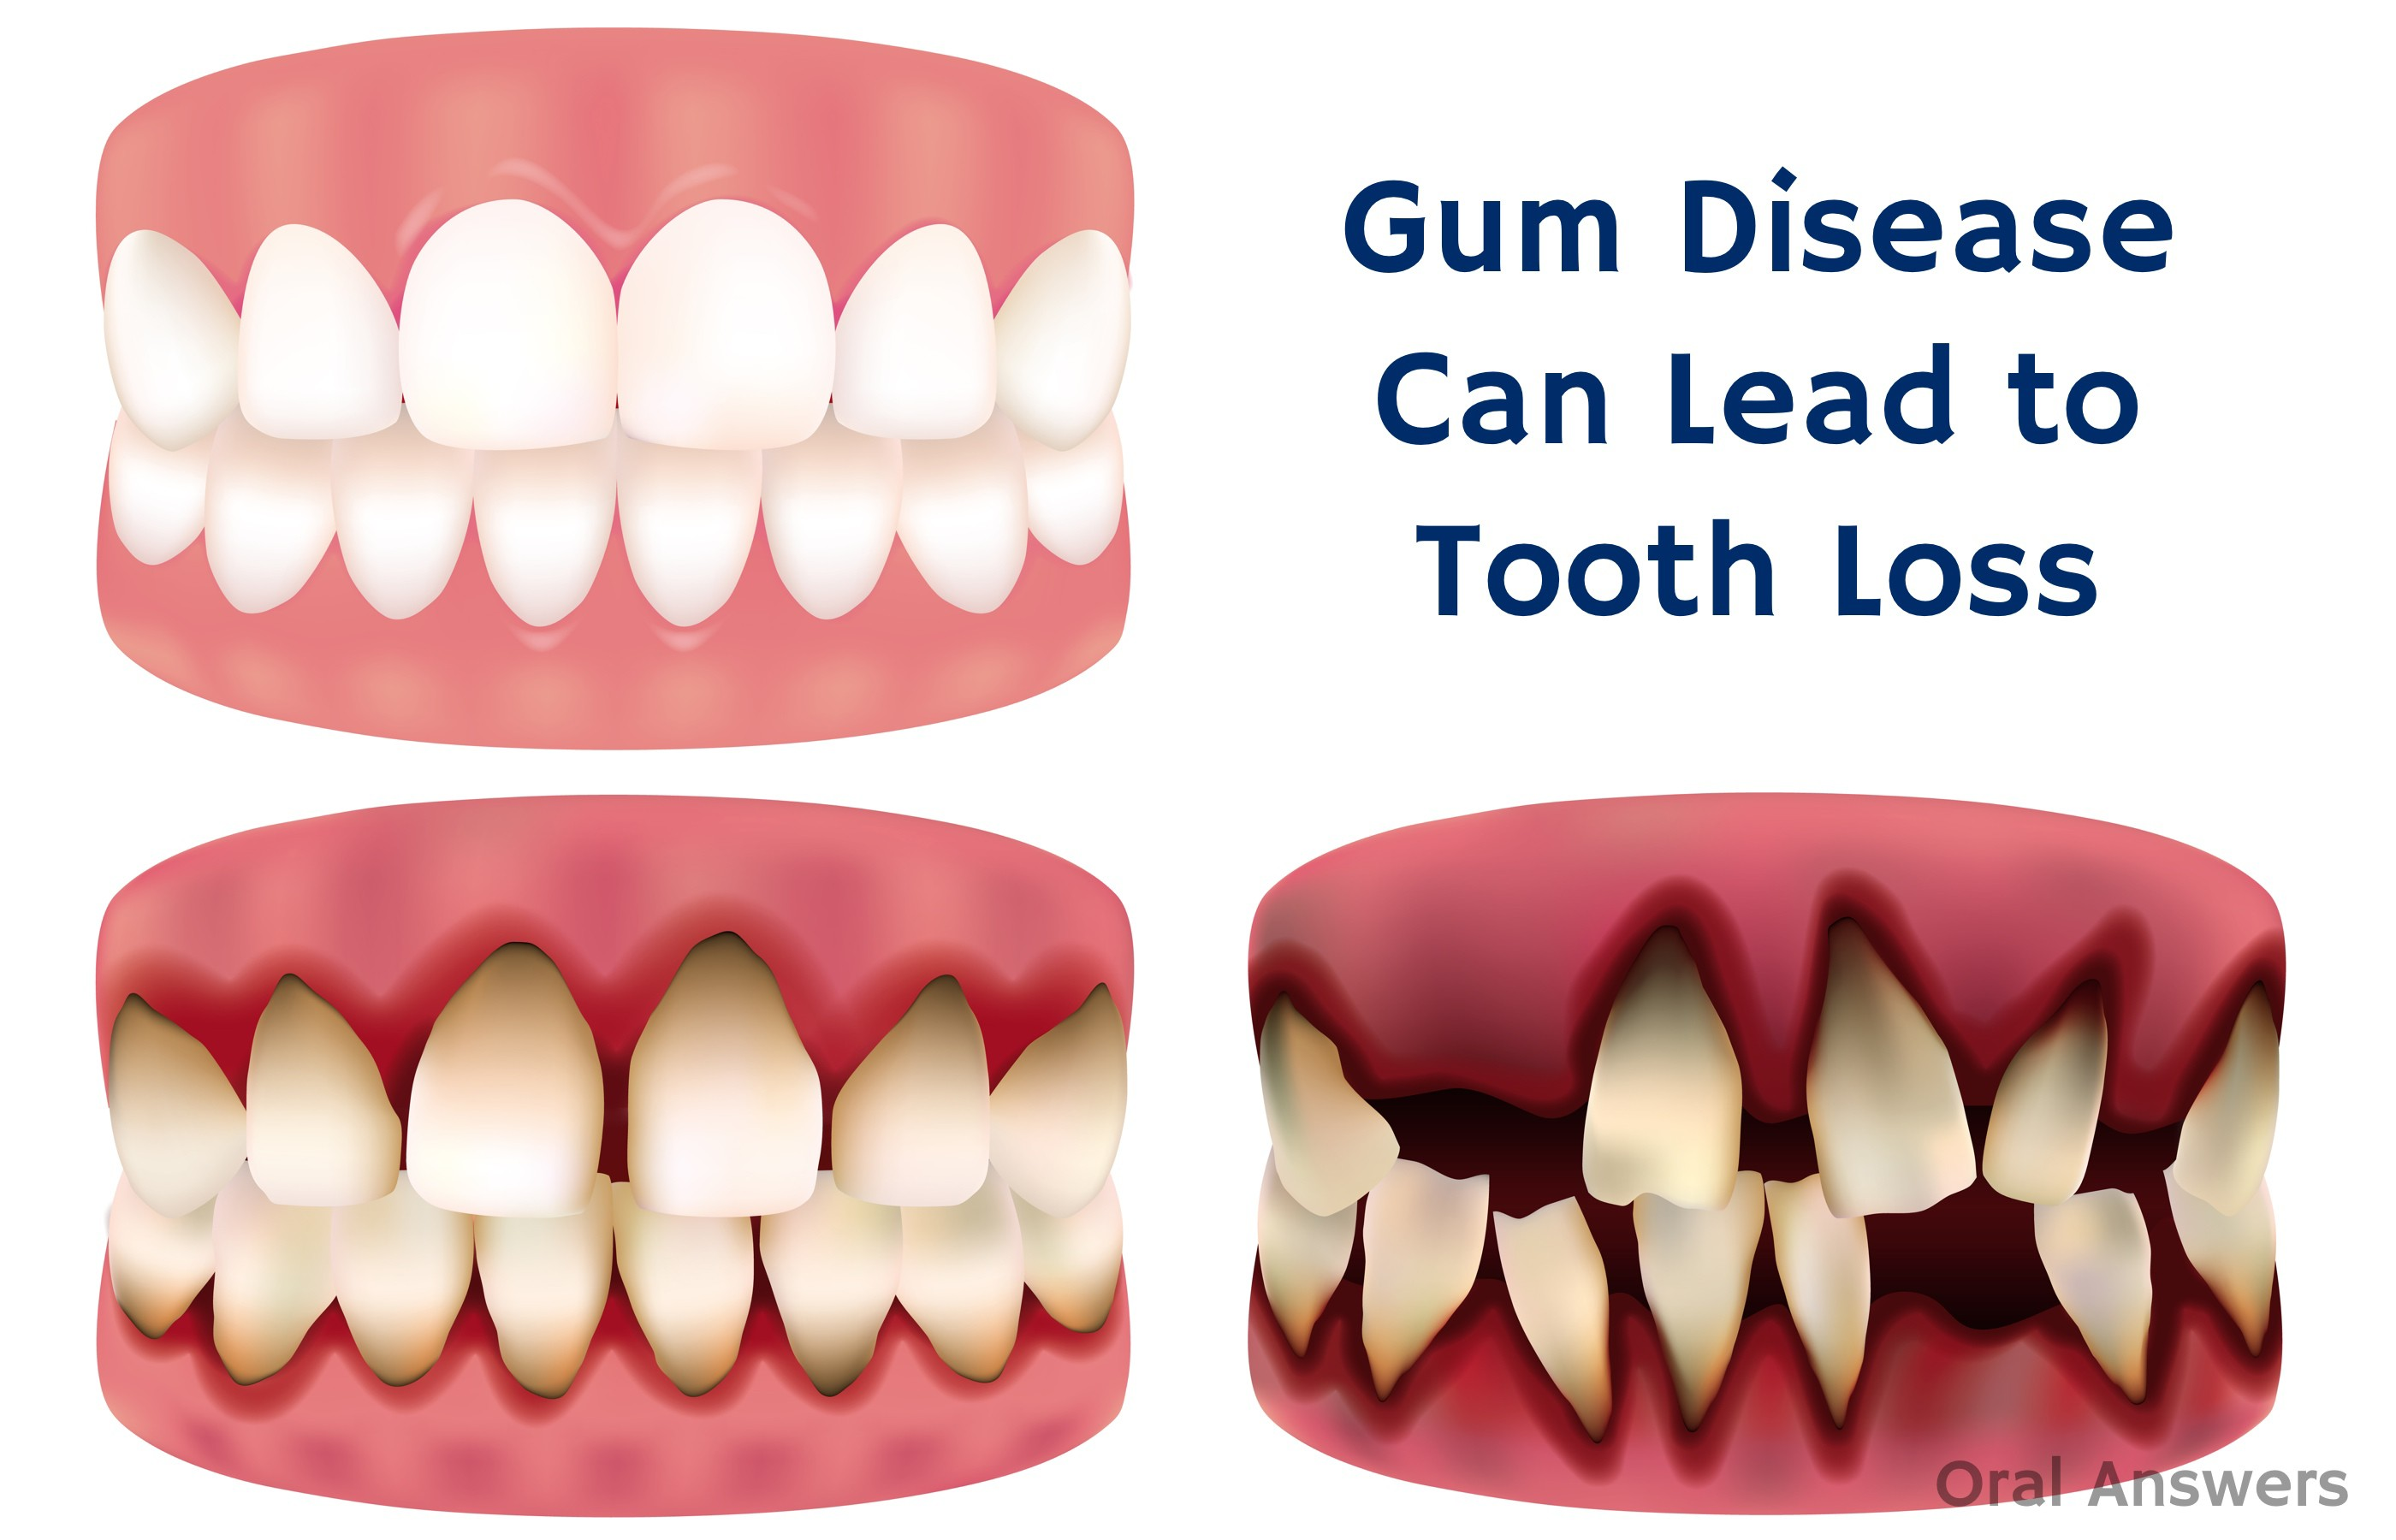 Periodontal Disease Not Cavities Is The Leading Cause Of Tooth